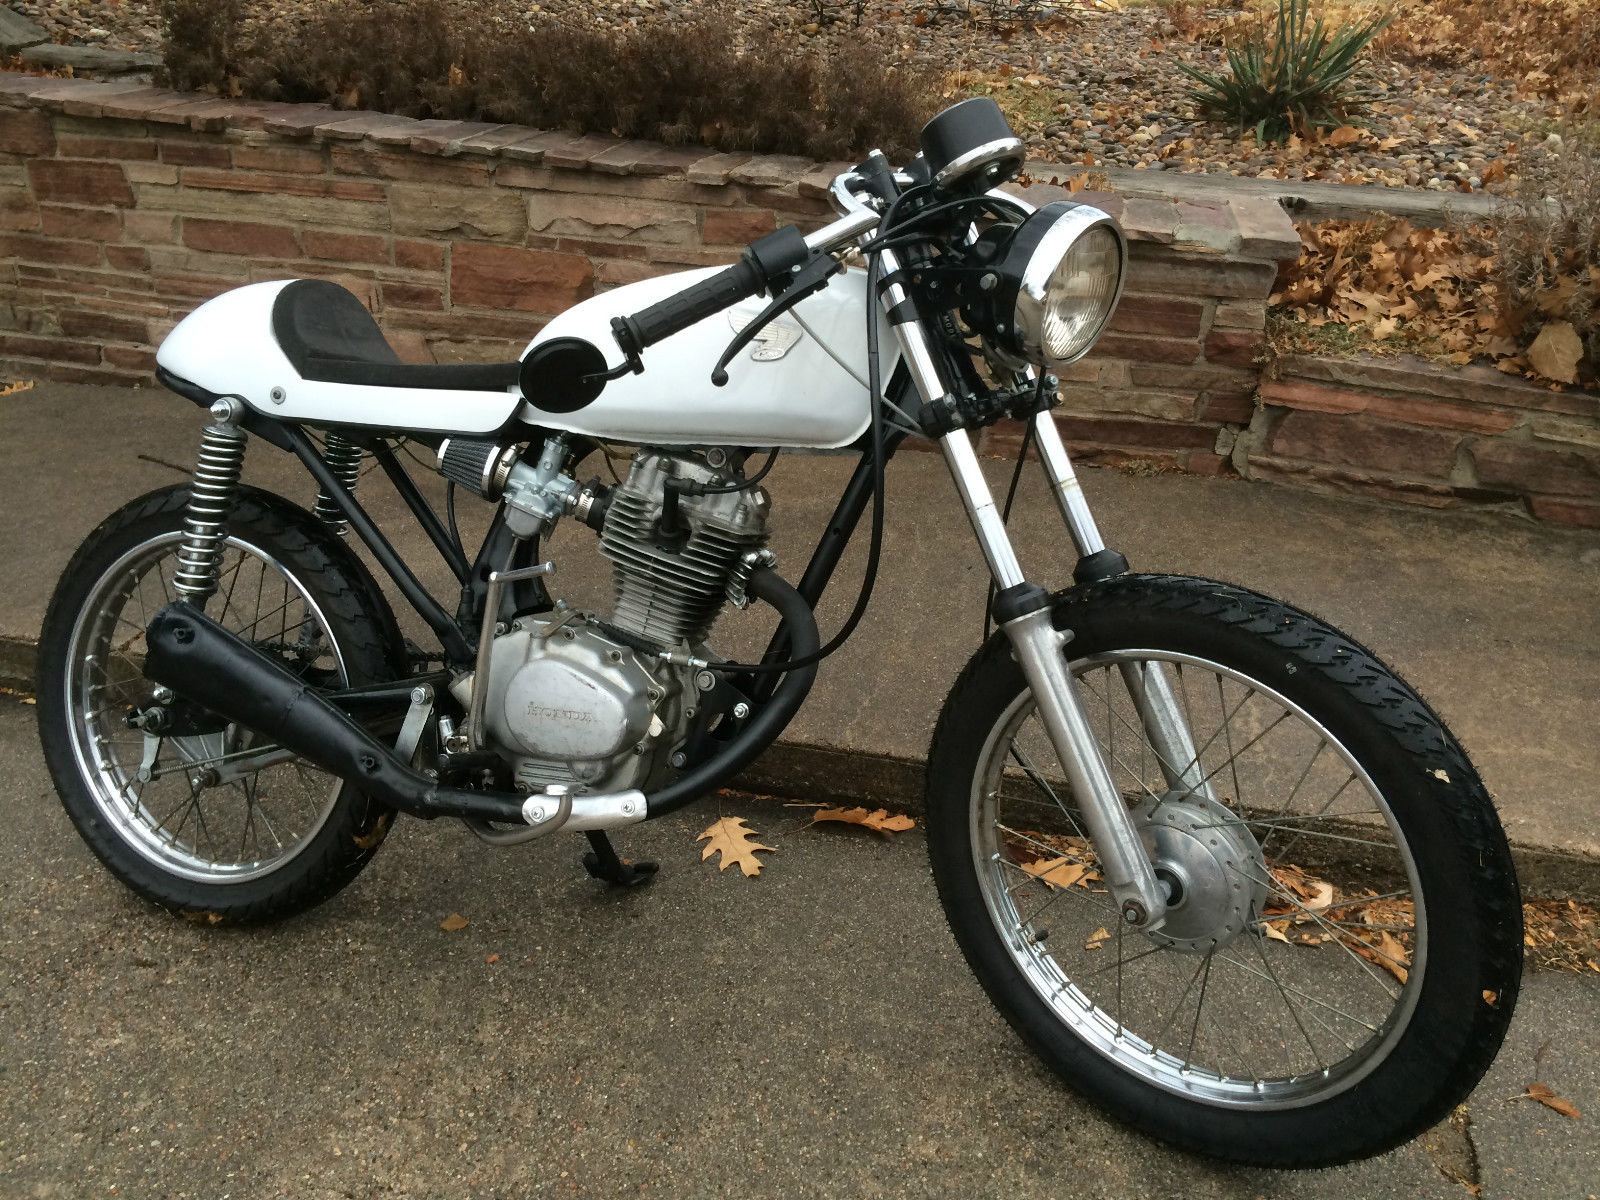 1978 honda cb125 cafe racer. Black Bedroom Furniture Sets. Home Design Ideas